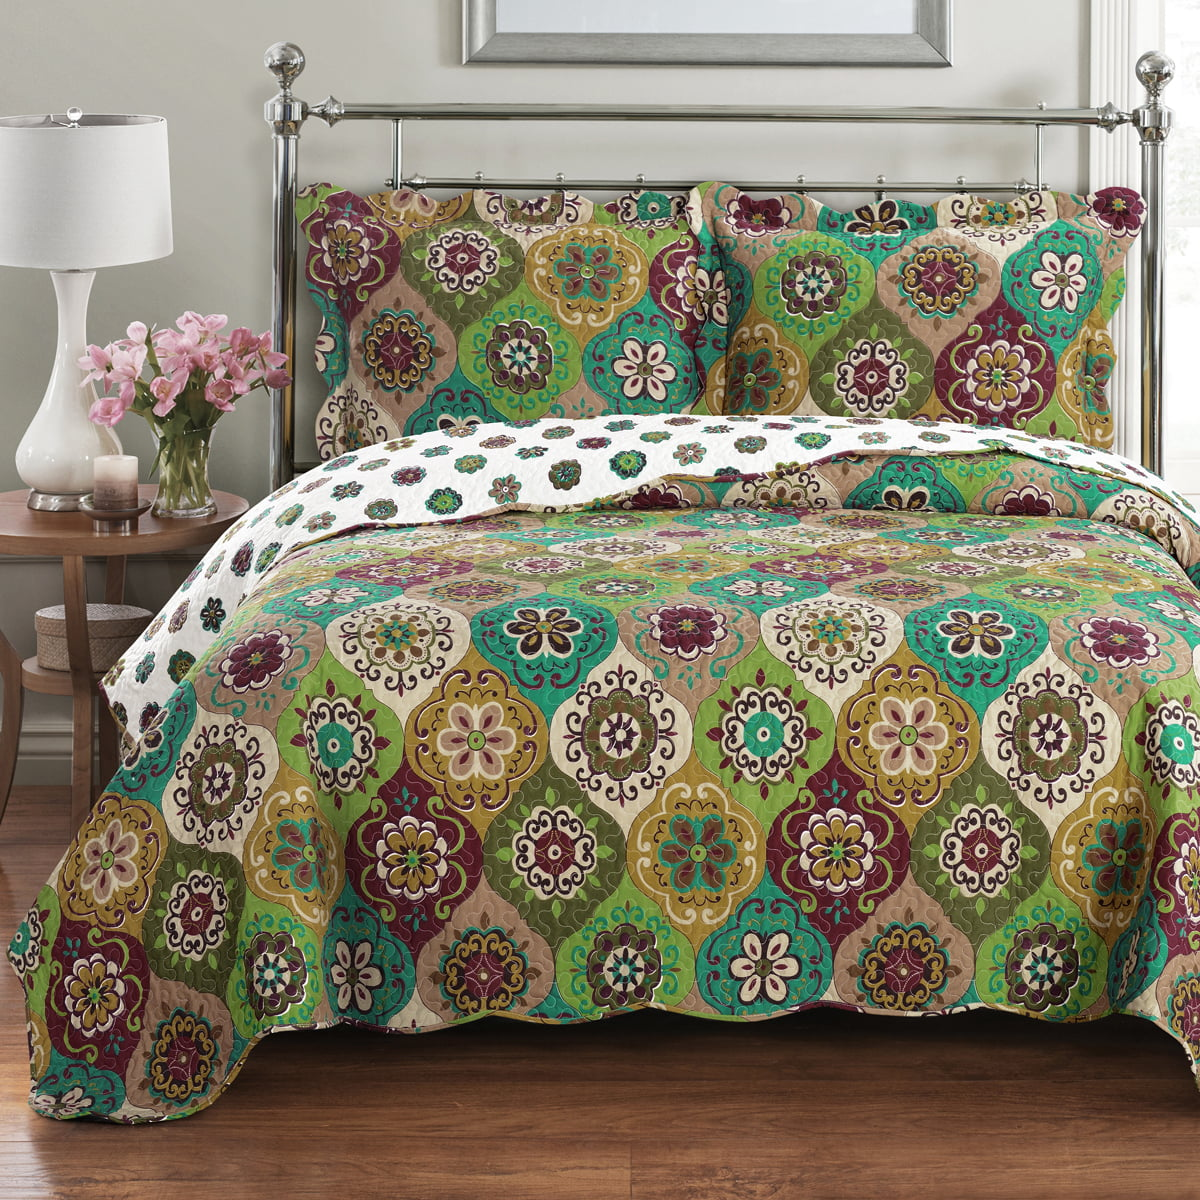 Bonnie Oversize Coverlet Floral Printed Reversible Wrinkle-Free & Easy Care Quilt Set by Royal Plaza Textiles, Inc.